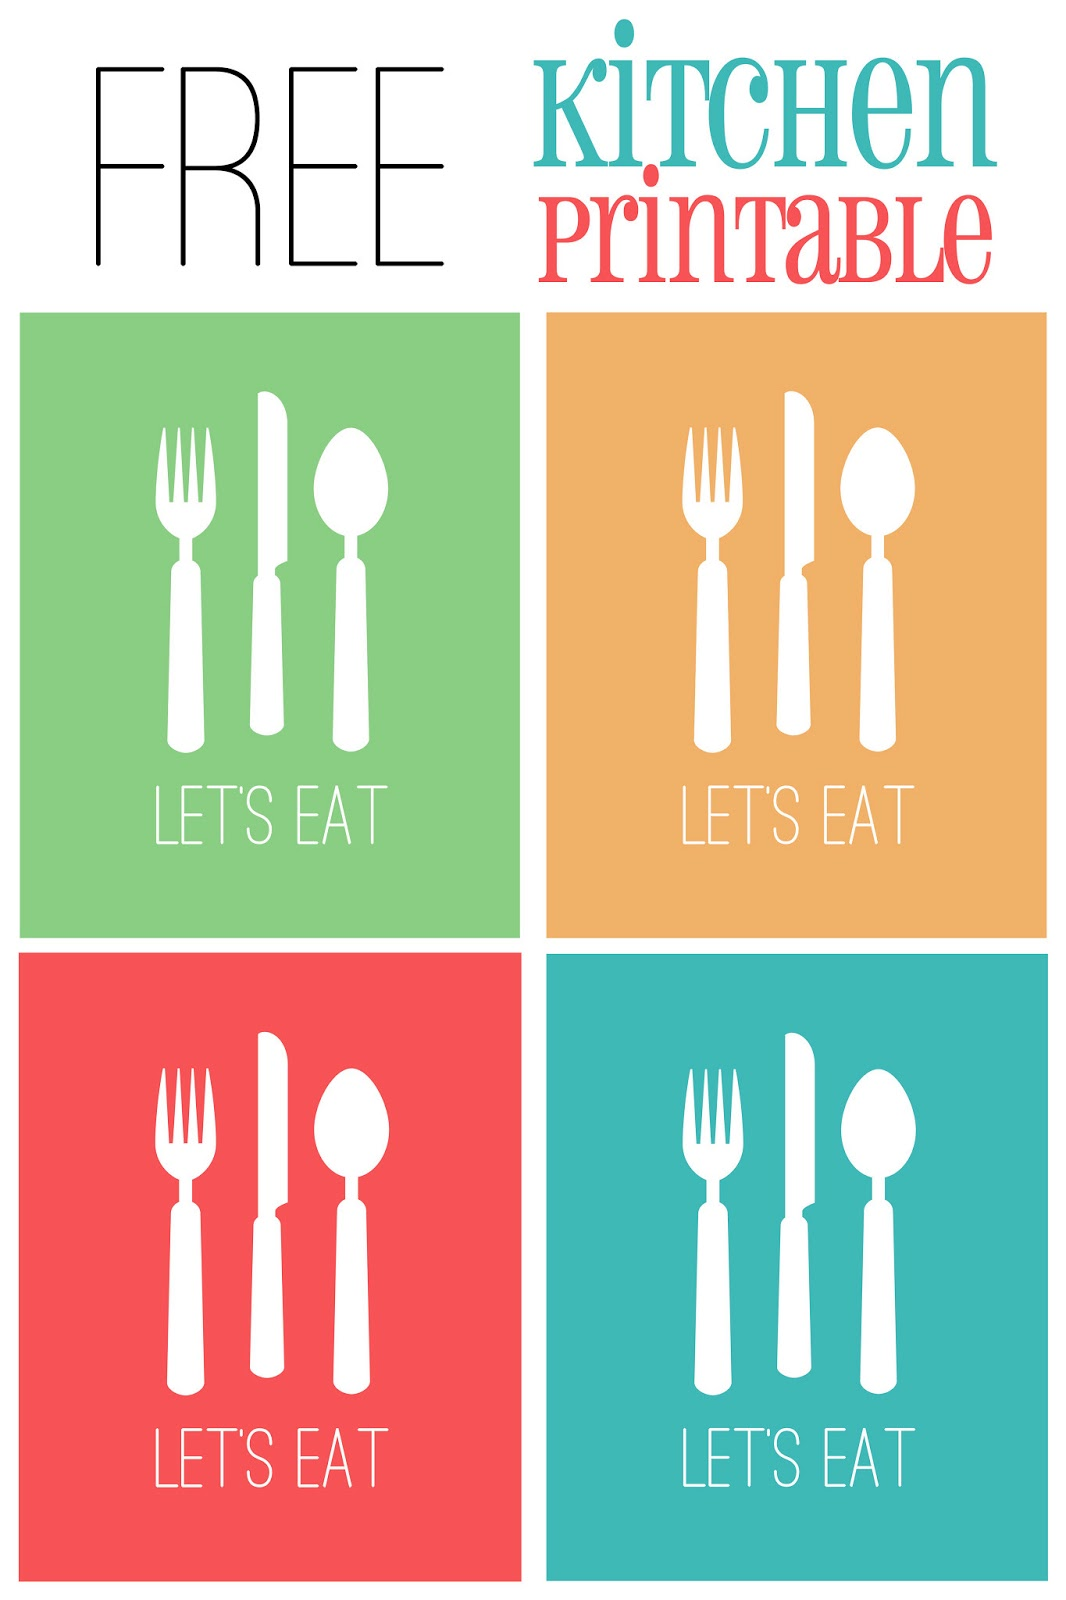 Comprehensive image with regard to kitchen printable